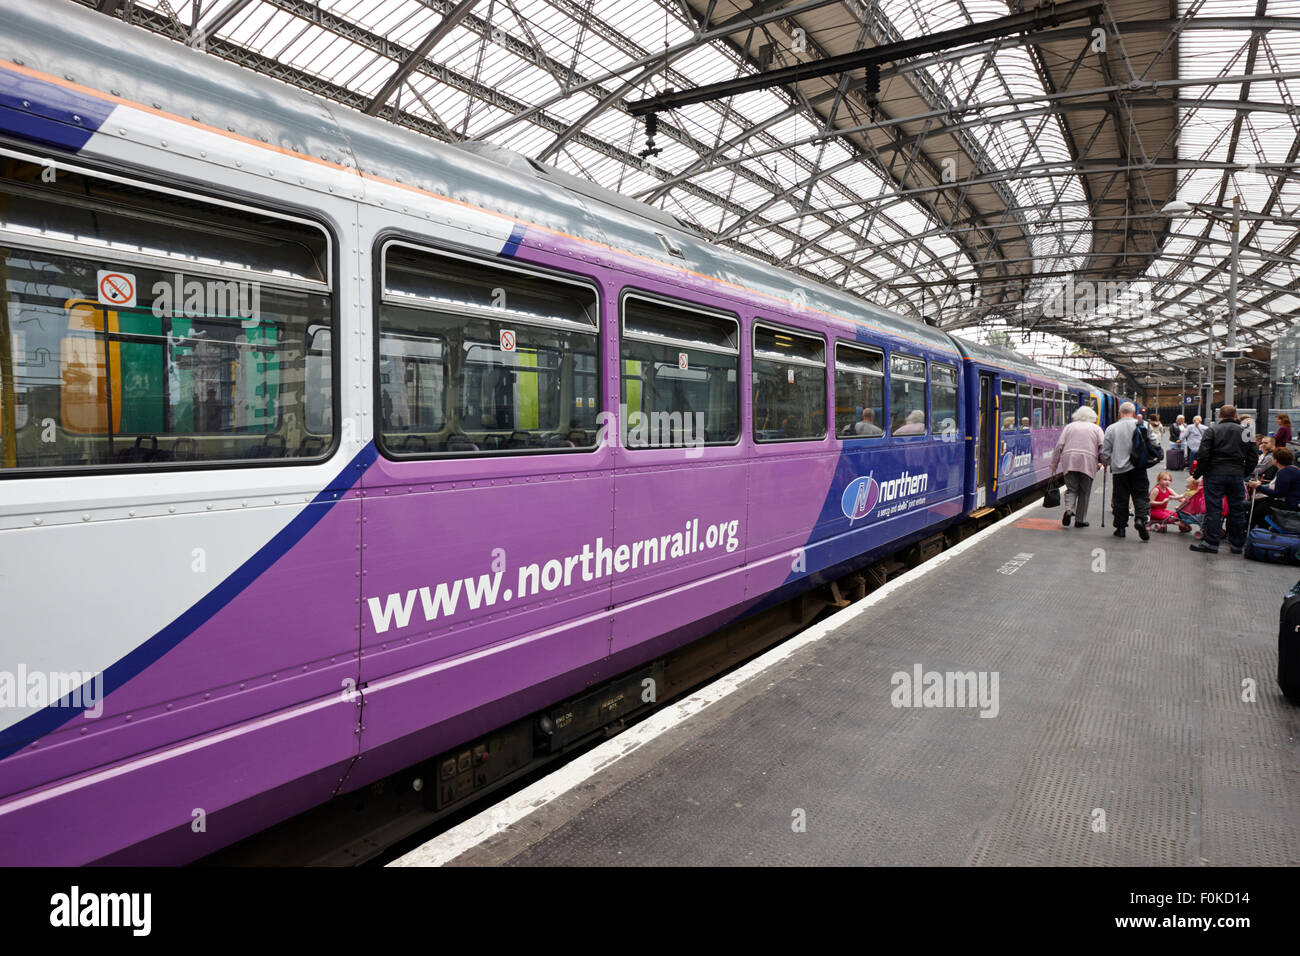 northern rail line train on platform at Liverpool lime street station England UK - Stock Image